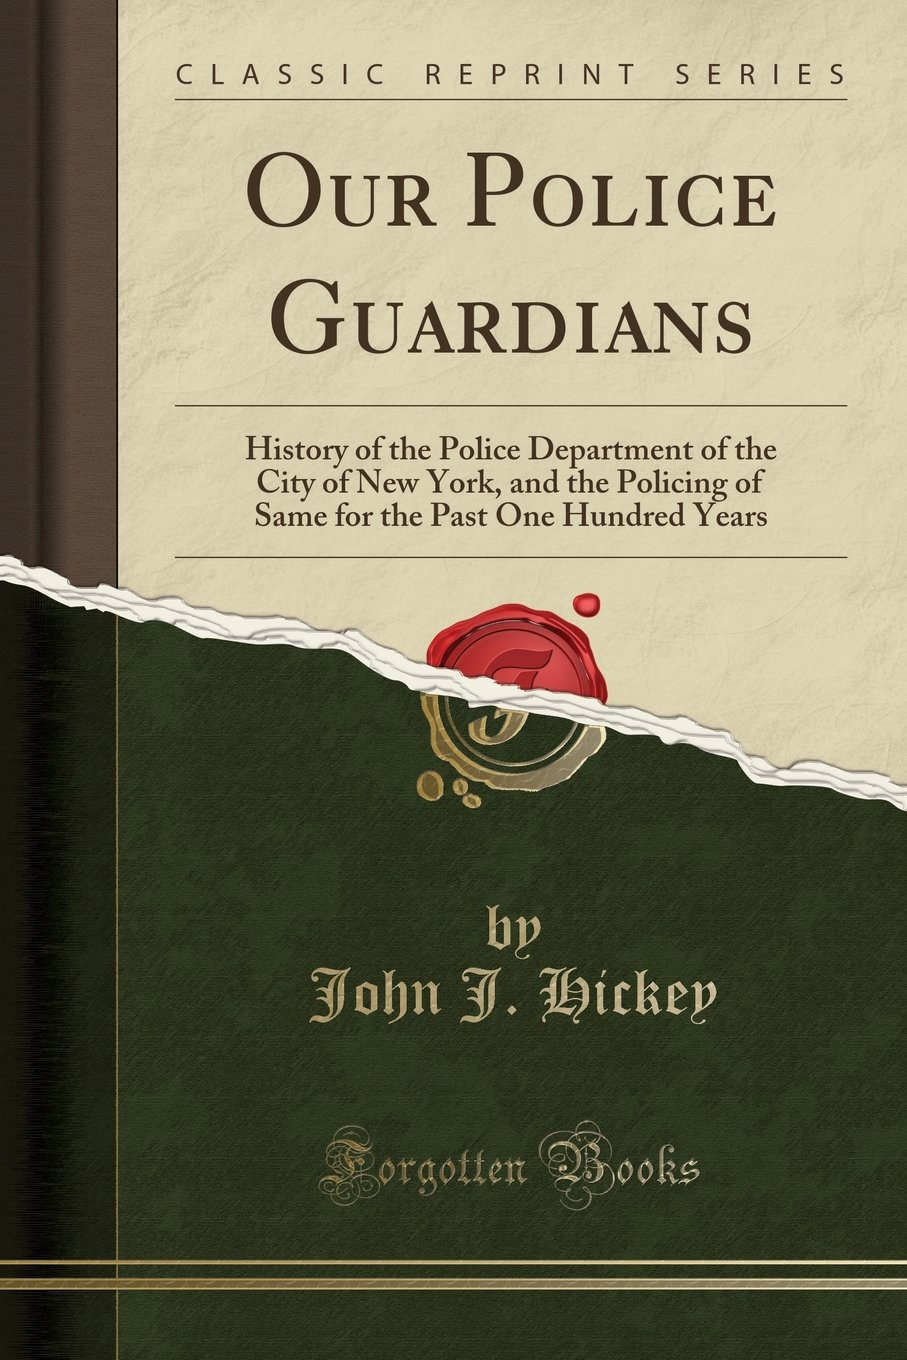 Our Police Guardians: History of the Police Department of the City of New York, and the Policing of Same for the Past One Hundred Years (Classic Reprint)